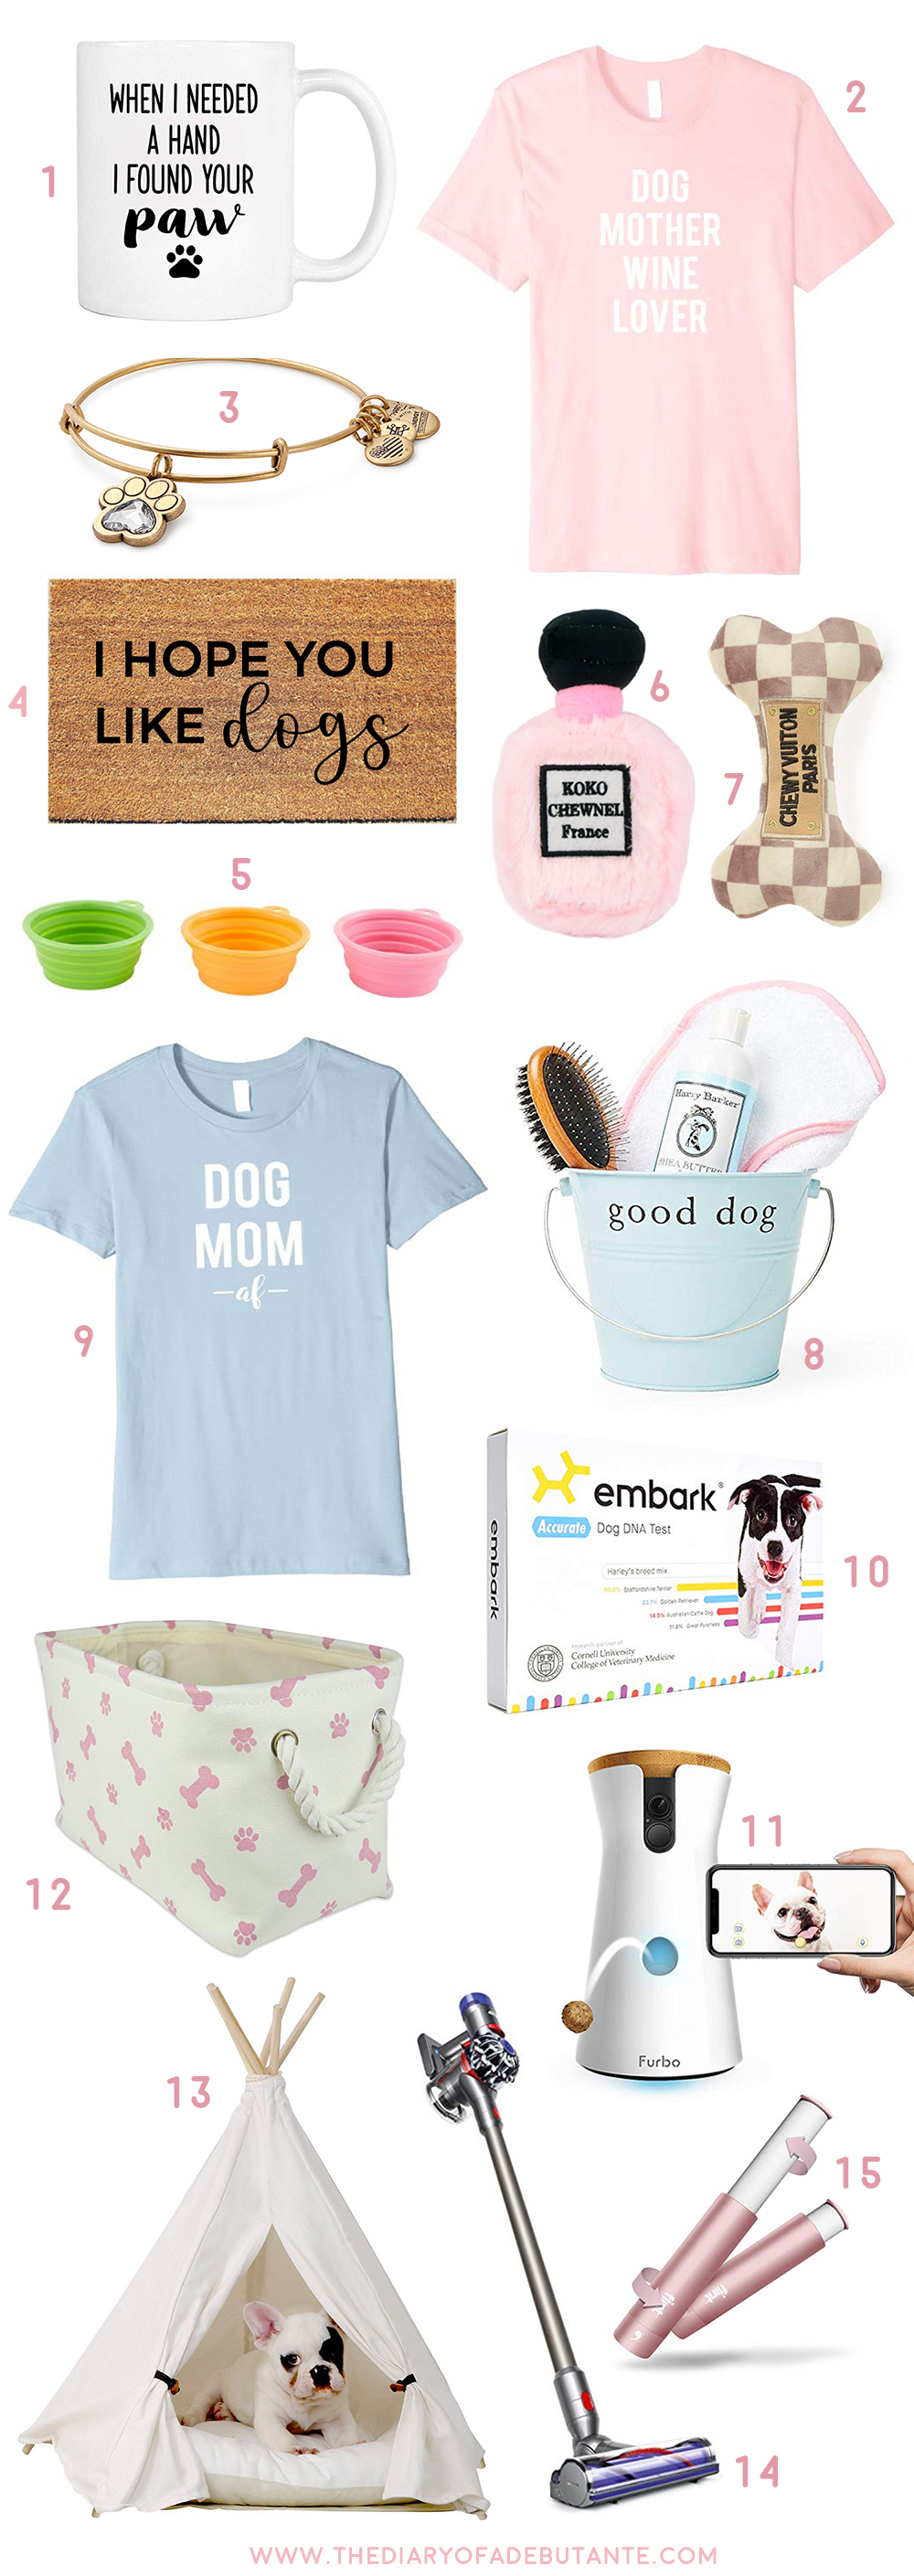 17 Cute Gift Ideas For Dog Moms Diary Of A Debutante